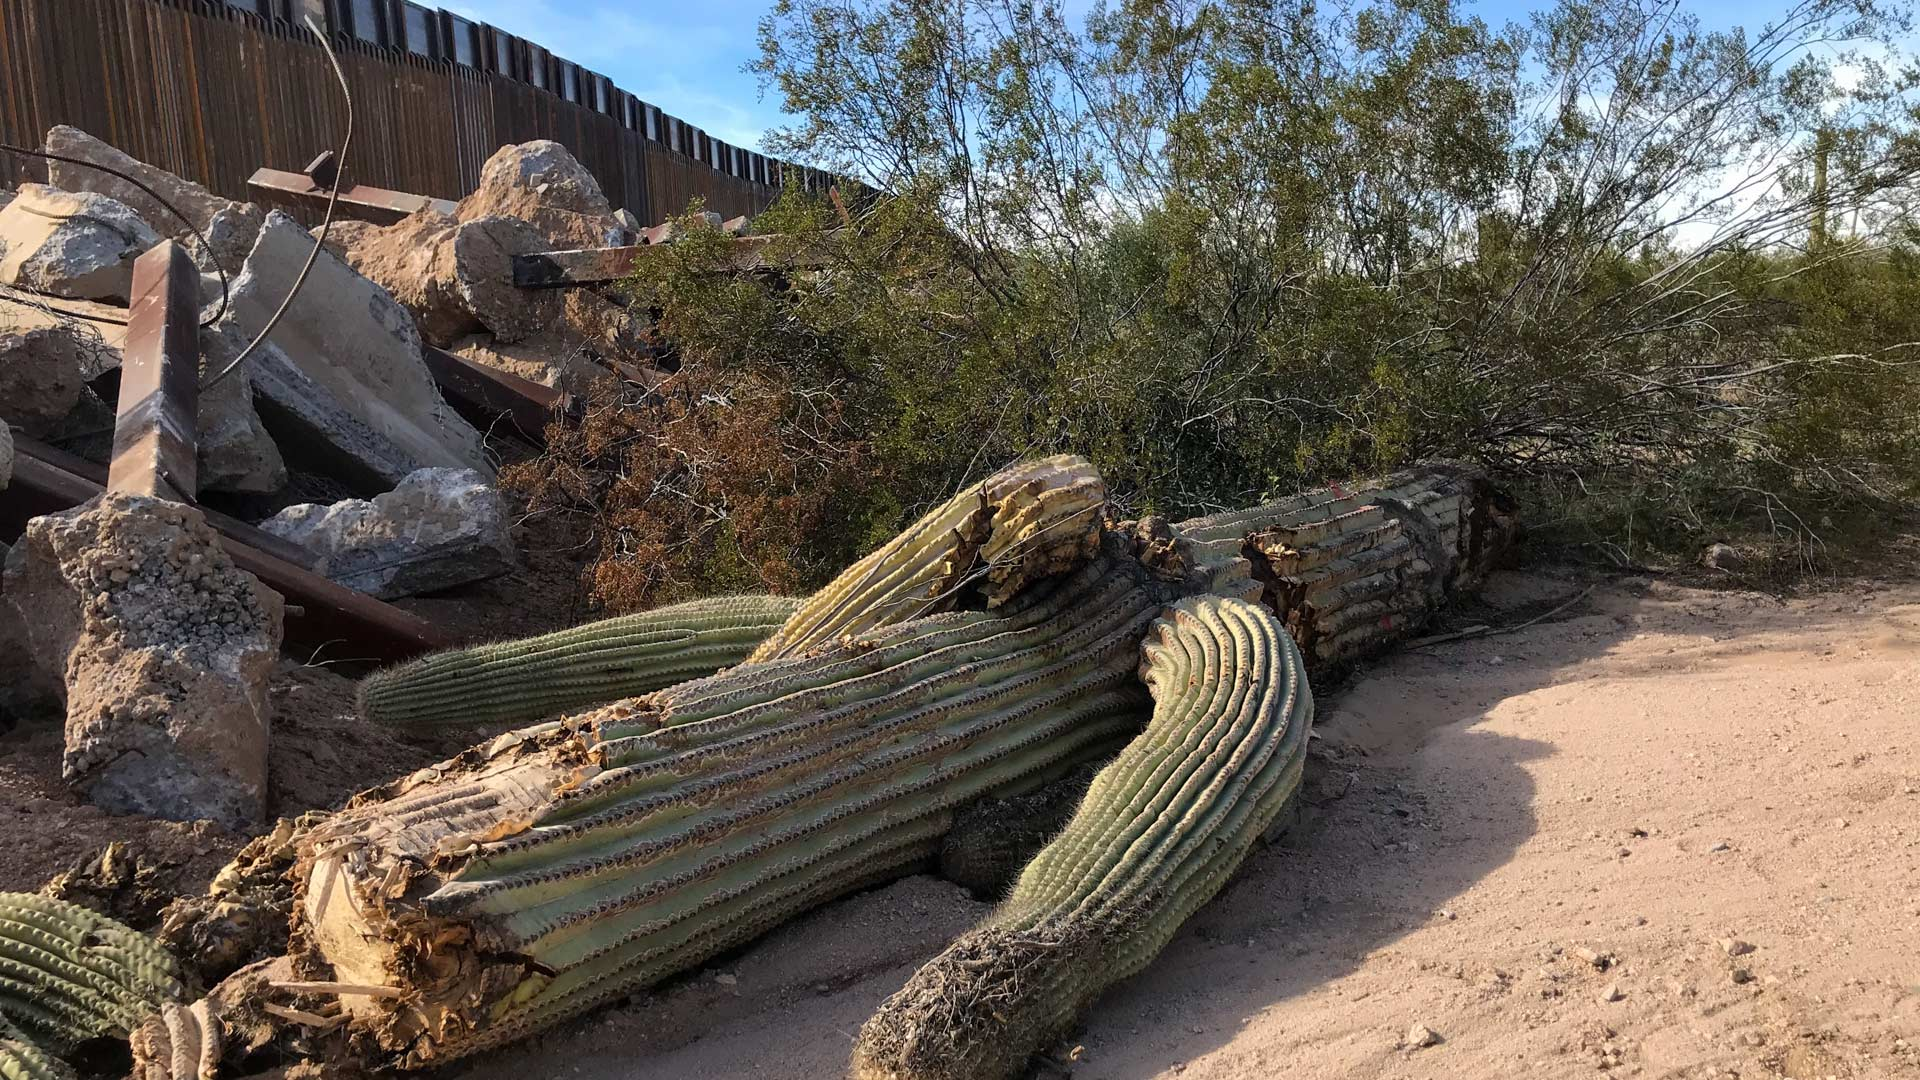 A toppled saguaro in Organ Pipe Cactus National Monument on Dec. 21, 2019.